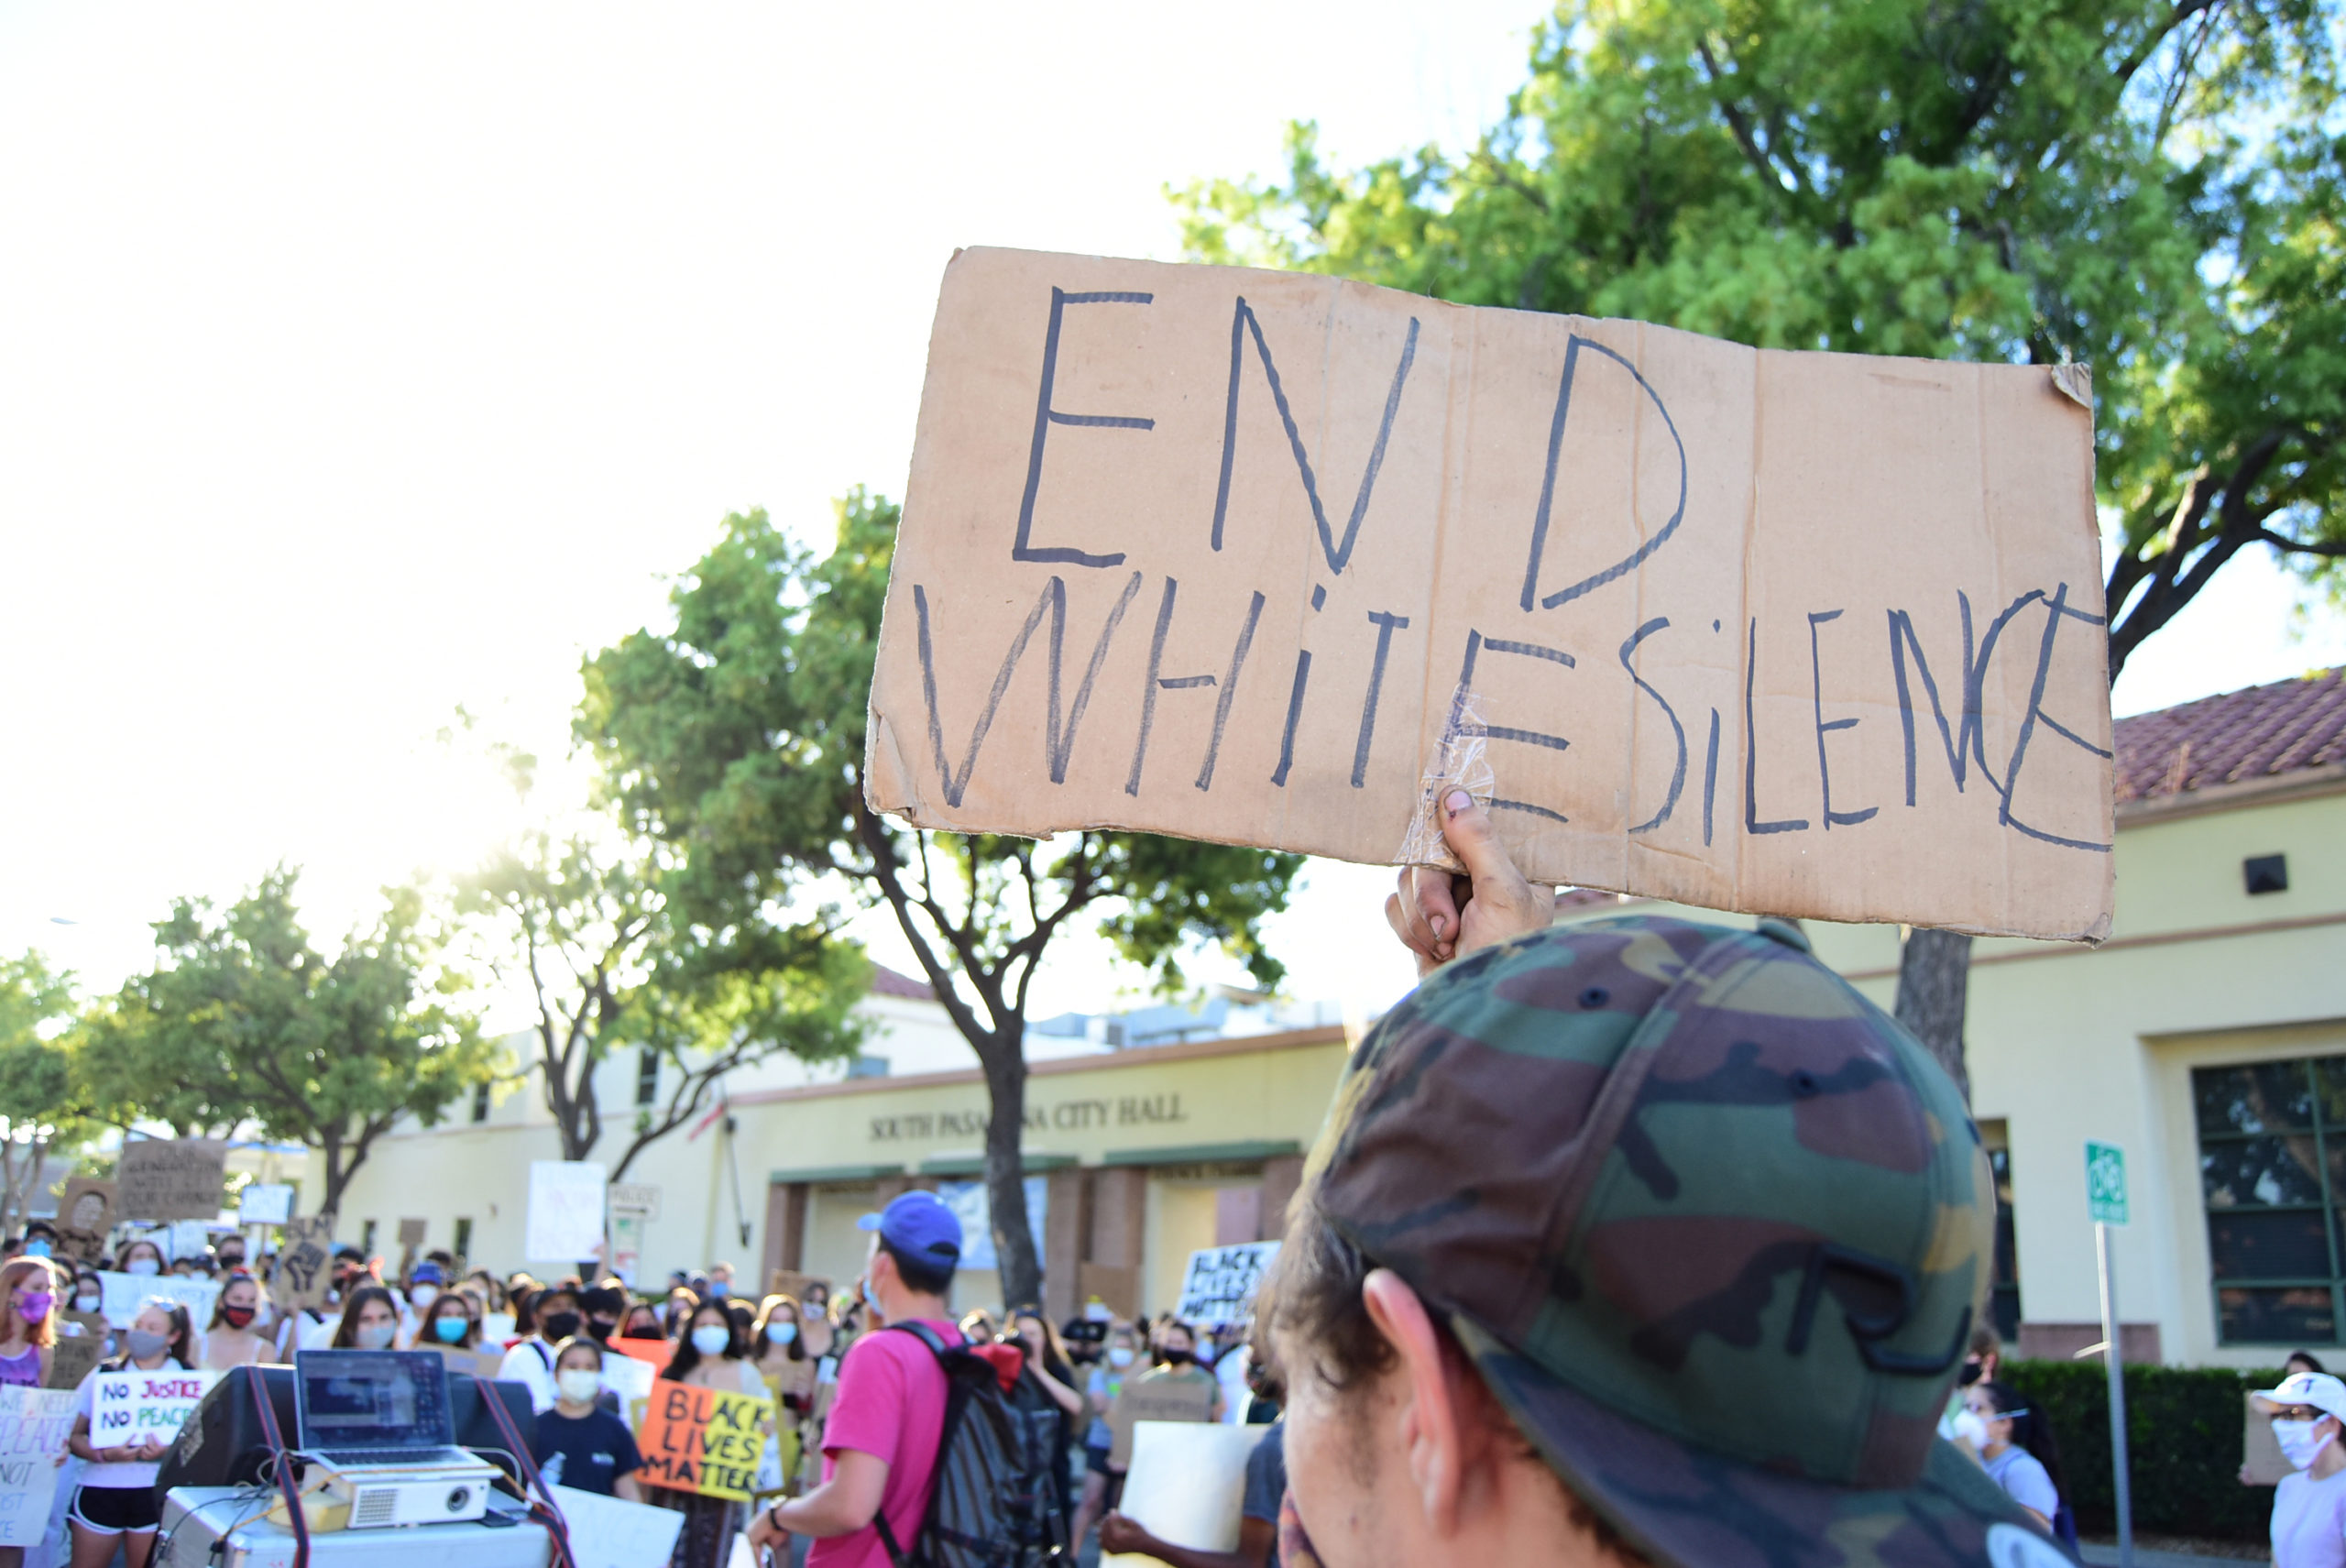 south-pasadena-news-06-12-2020-blm-black-lives-matter-sp-youth-for-police-reform-protest-city-hall-mission-st-08